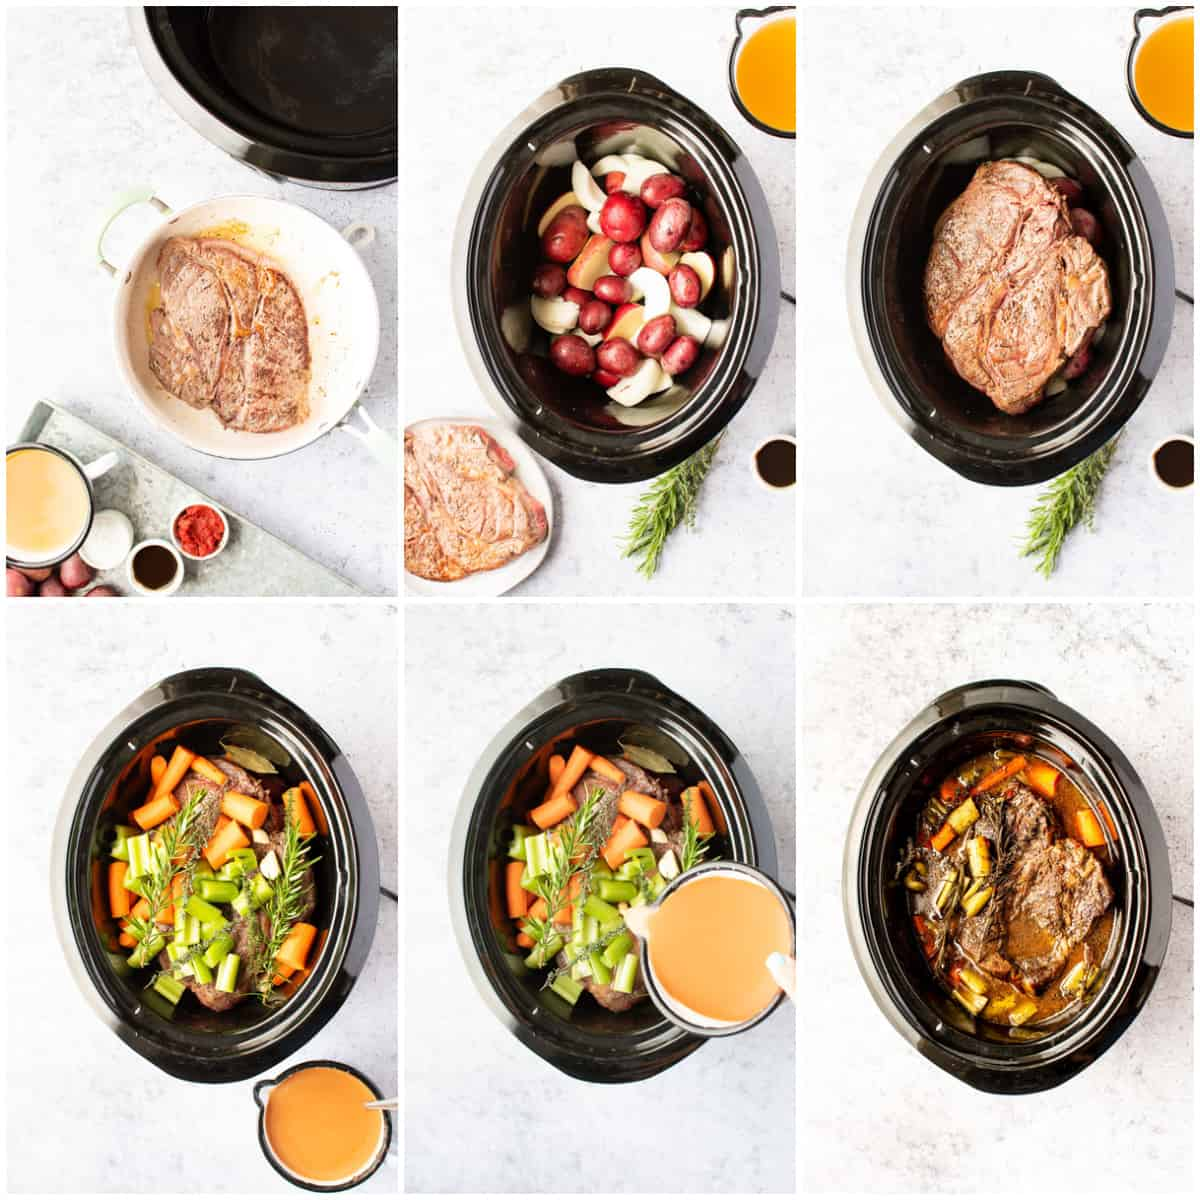 Step by step photos on how to make Slow Cooker Sunday Roast